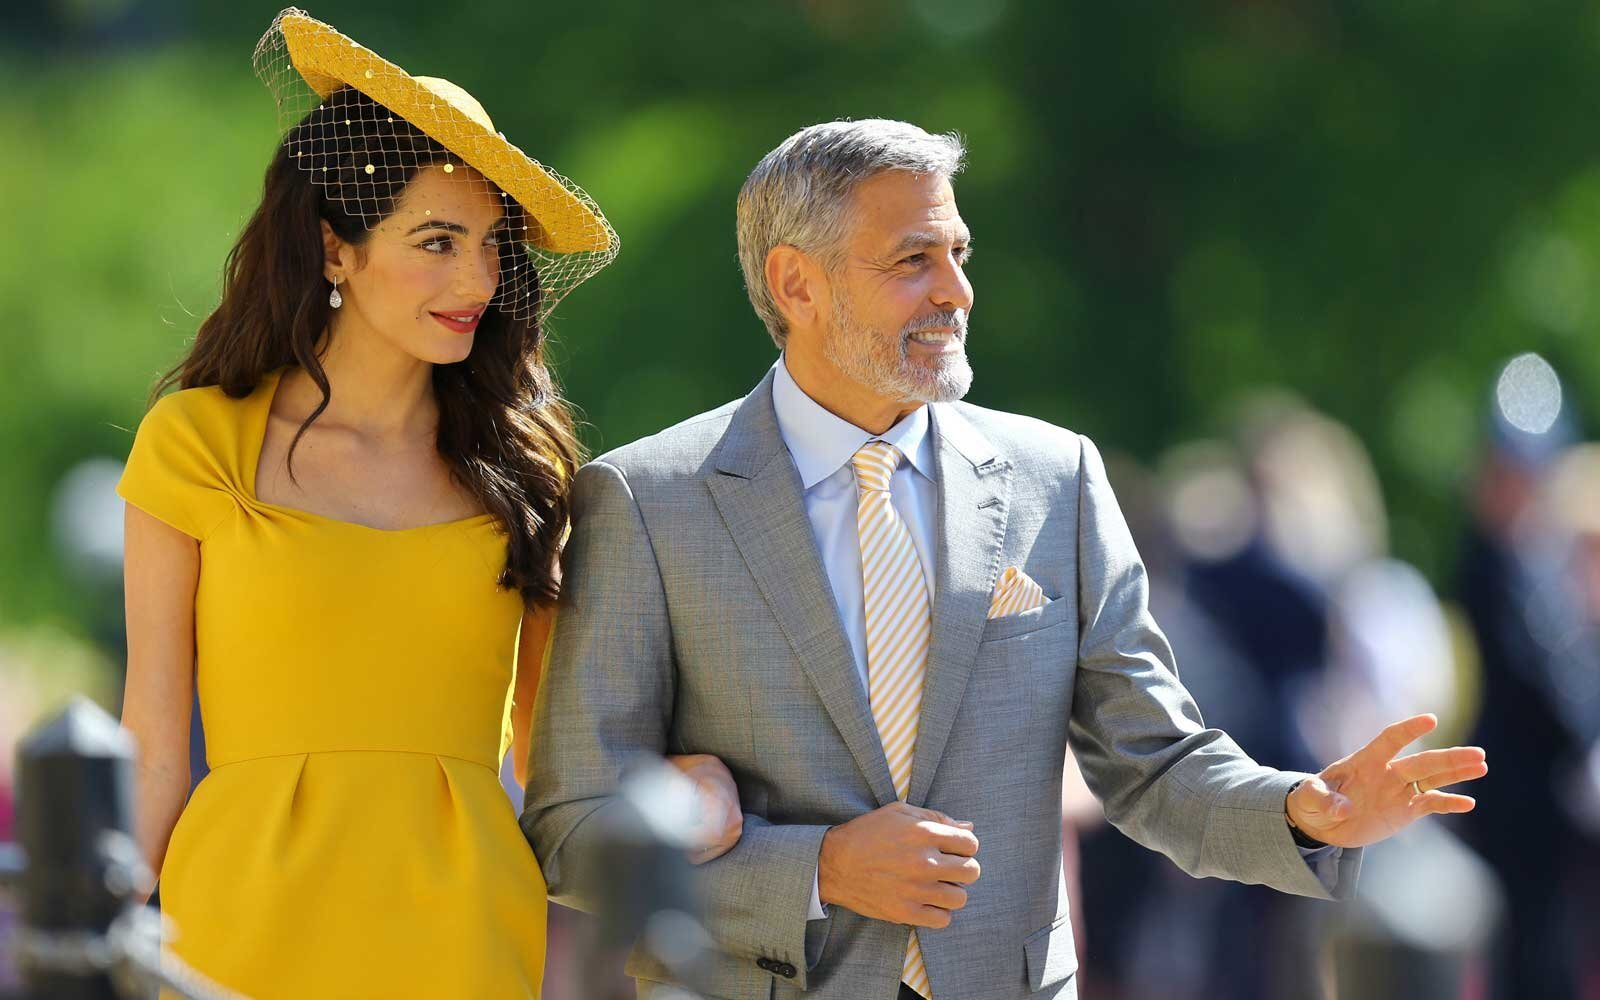 Guests At Royal Wedding.See All The Celebrity Guests At Prince Harry And Meghan Markle S